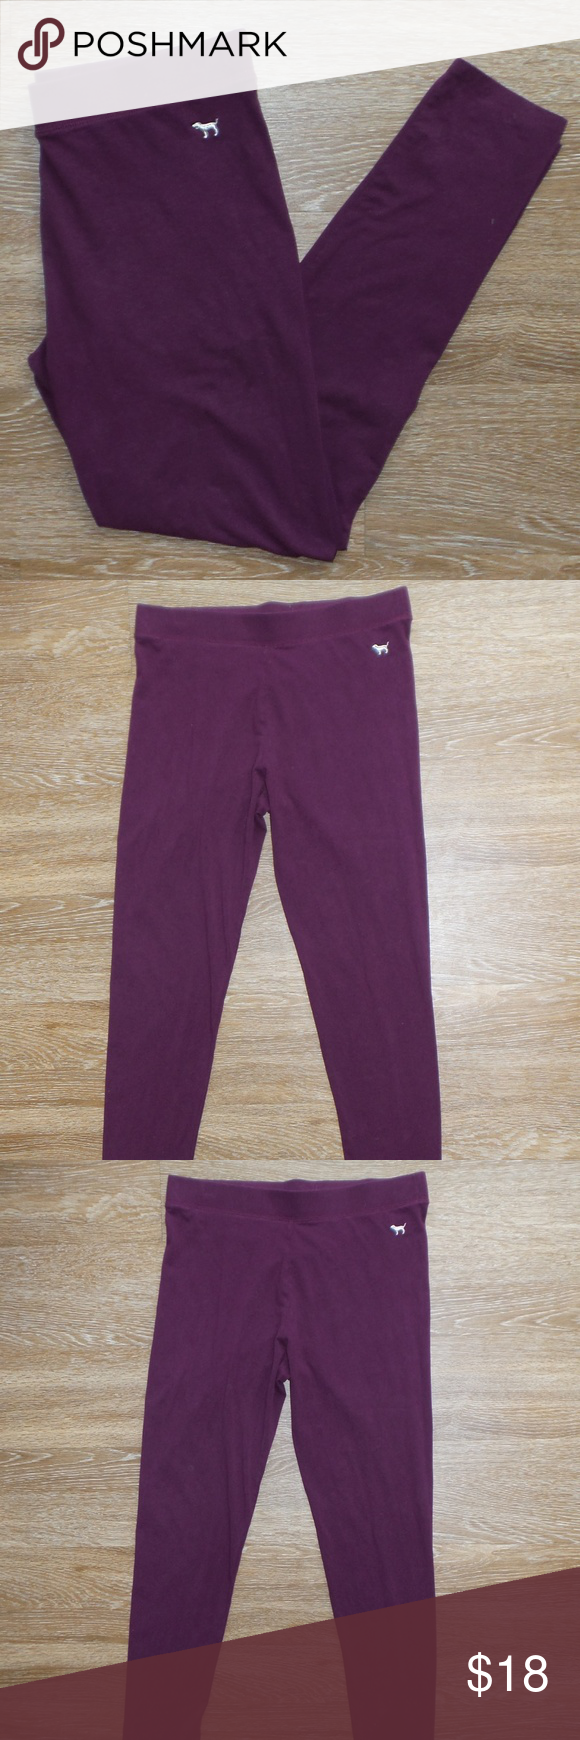 9210d07386f07 PINK Victoria's Secret Maroon Leggings Large Some pilling in crotch ...